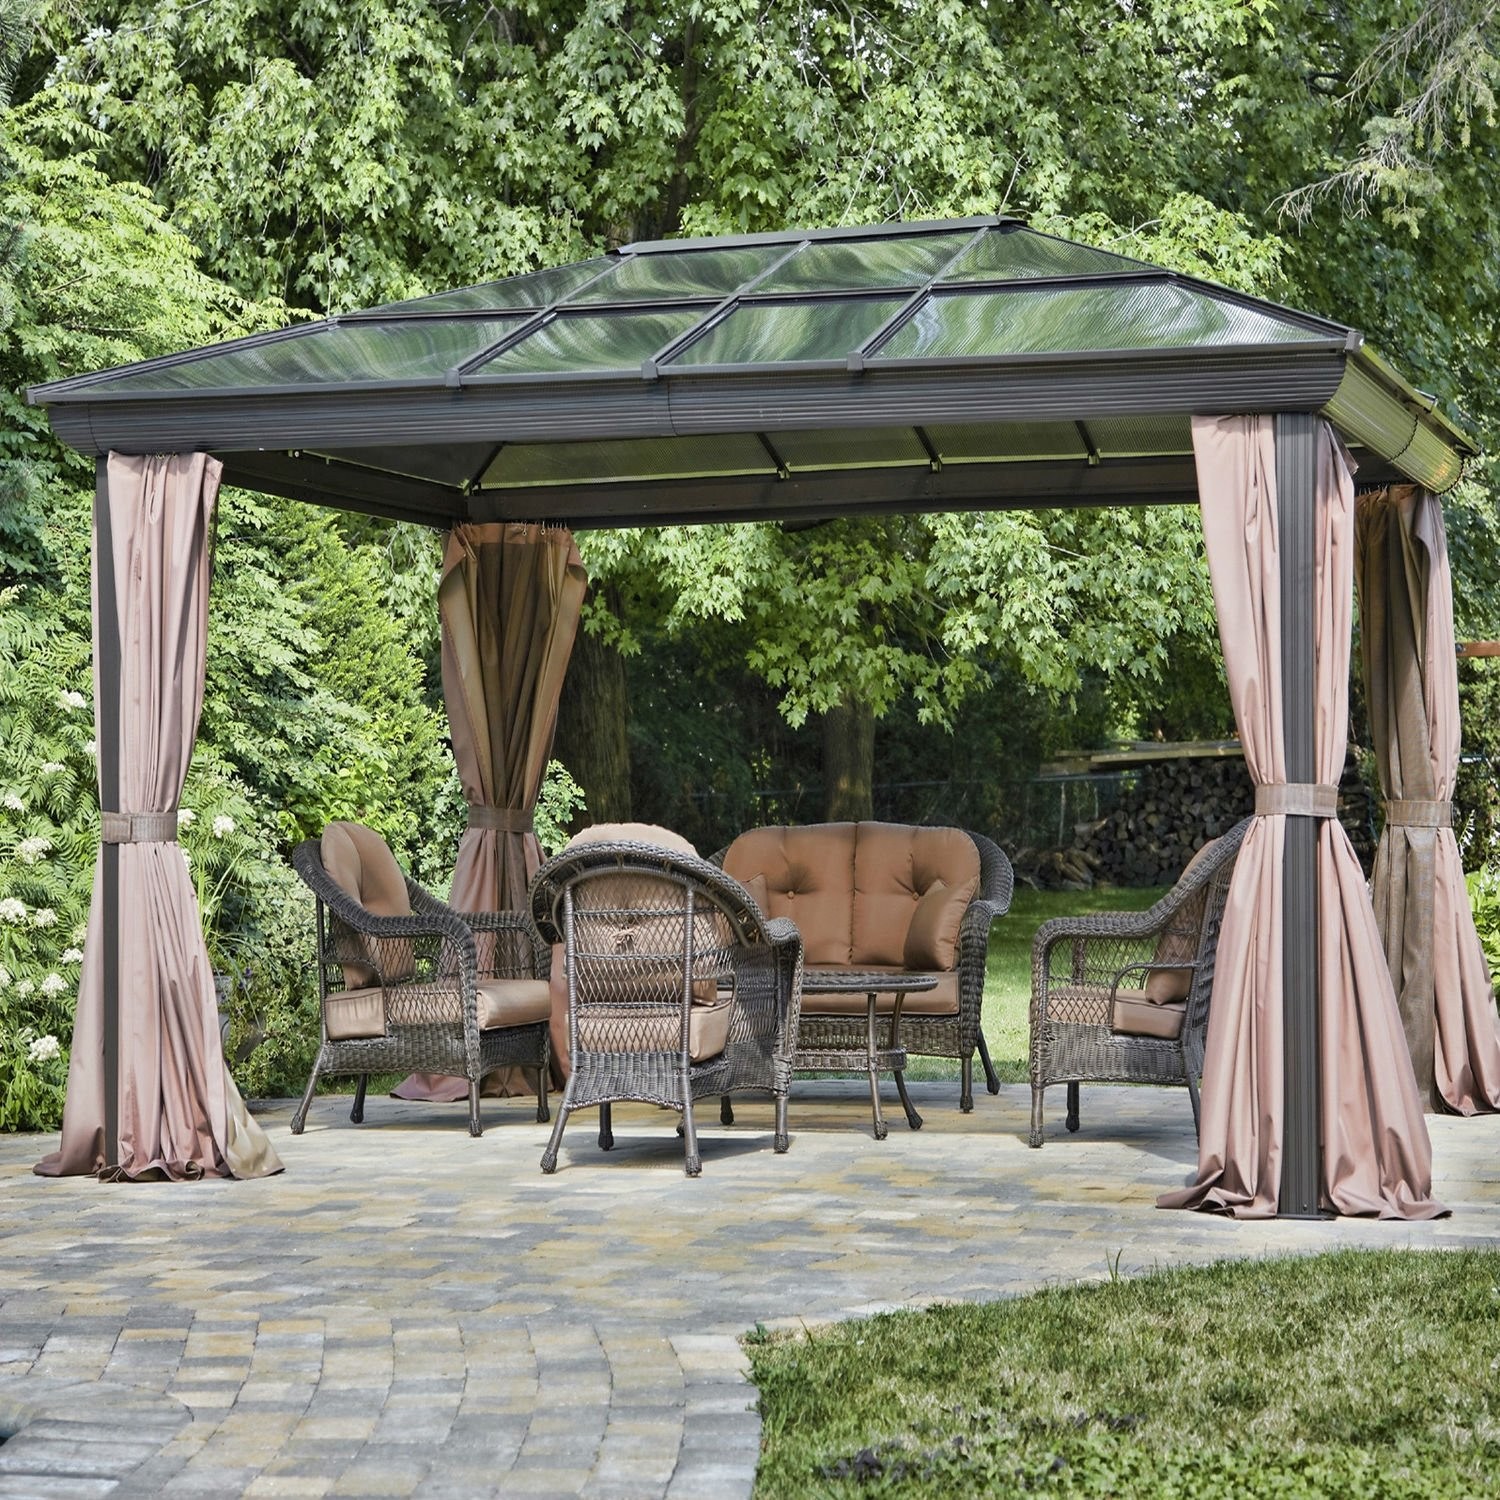 view chic exterior curtain beautiful fireplaces surrounding popular of a with awesome shade design ideas decor the and curtains outdoor garden pergola